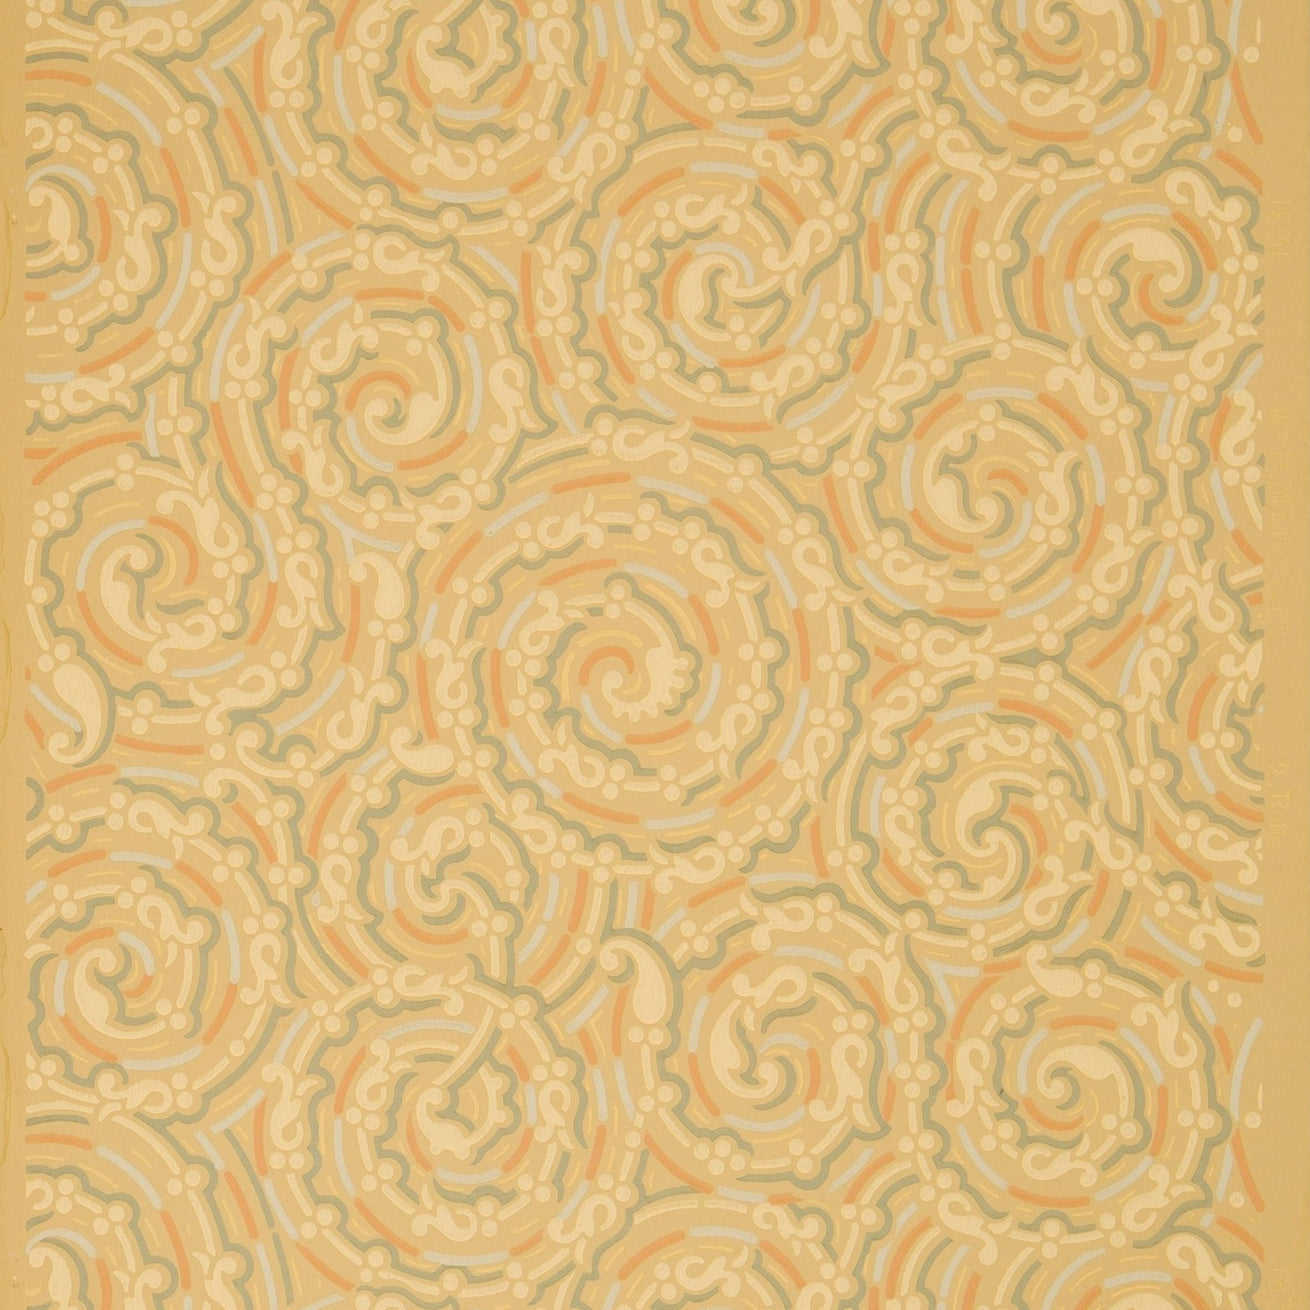 Swirling All-Over Stylized Scrolls - Antique Wallpaper Remnant